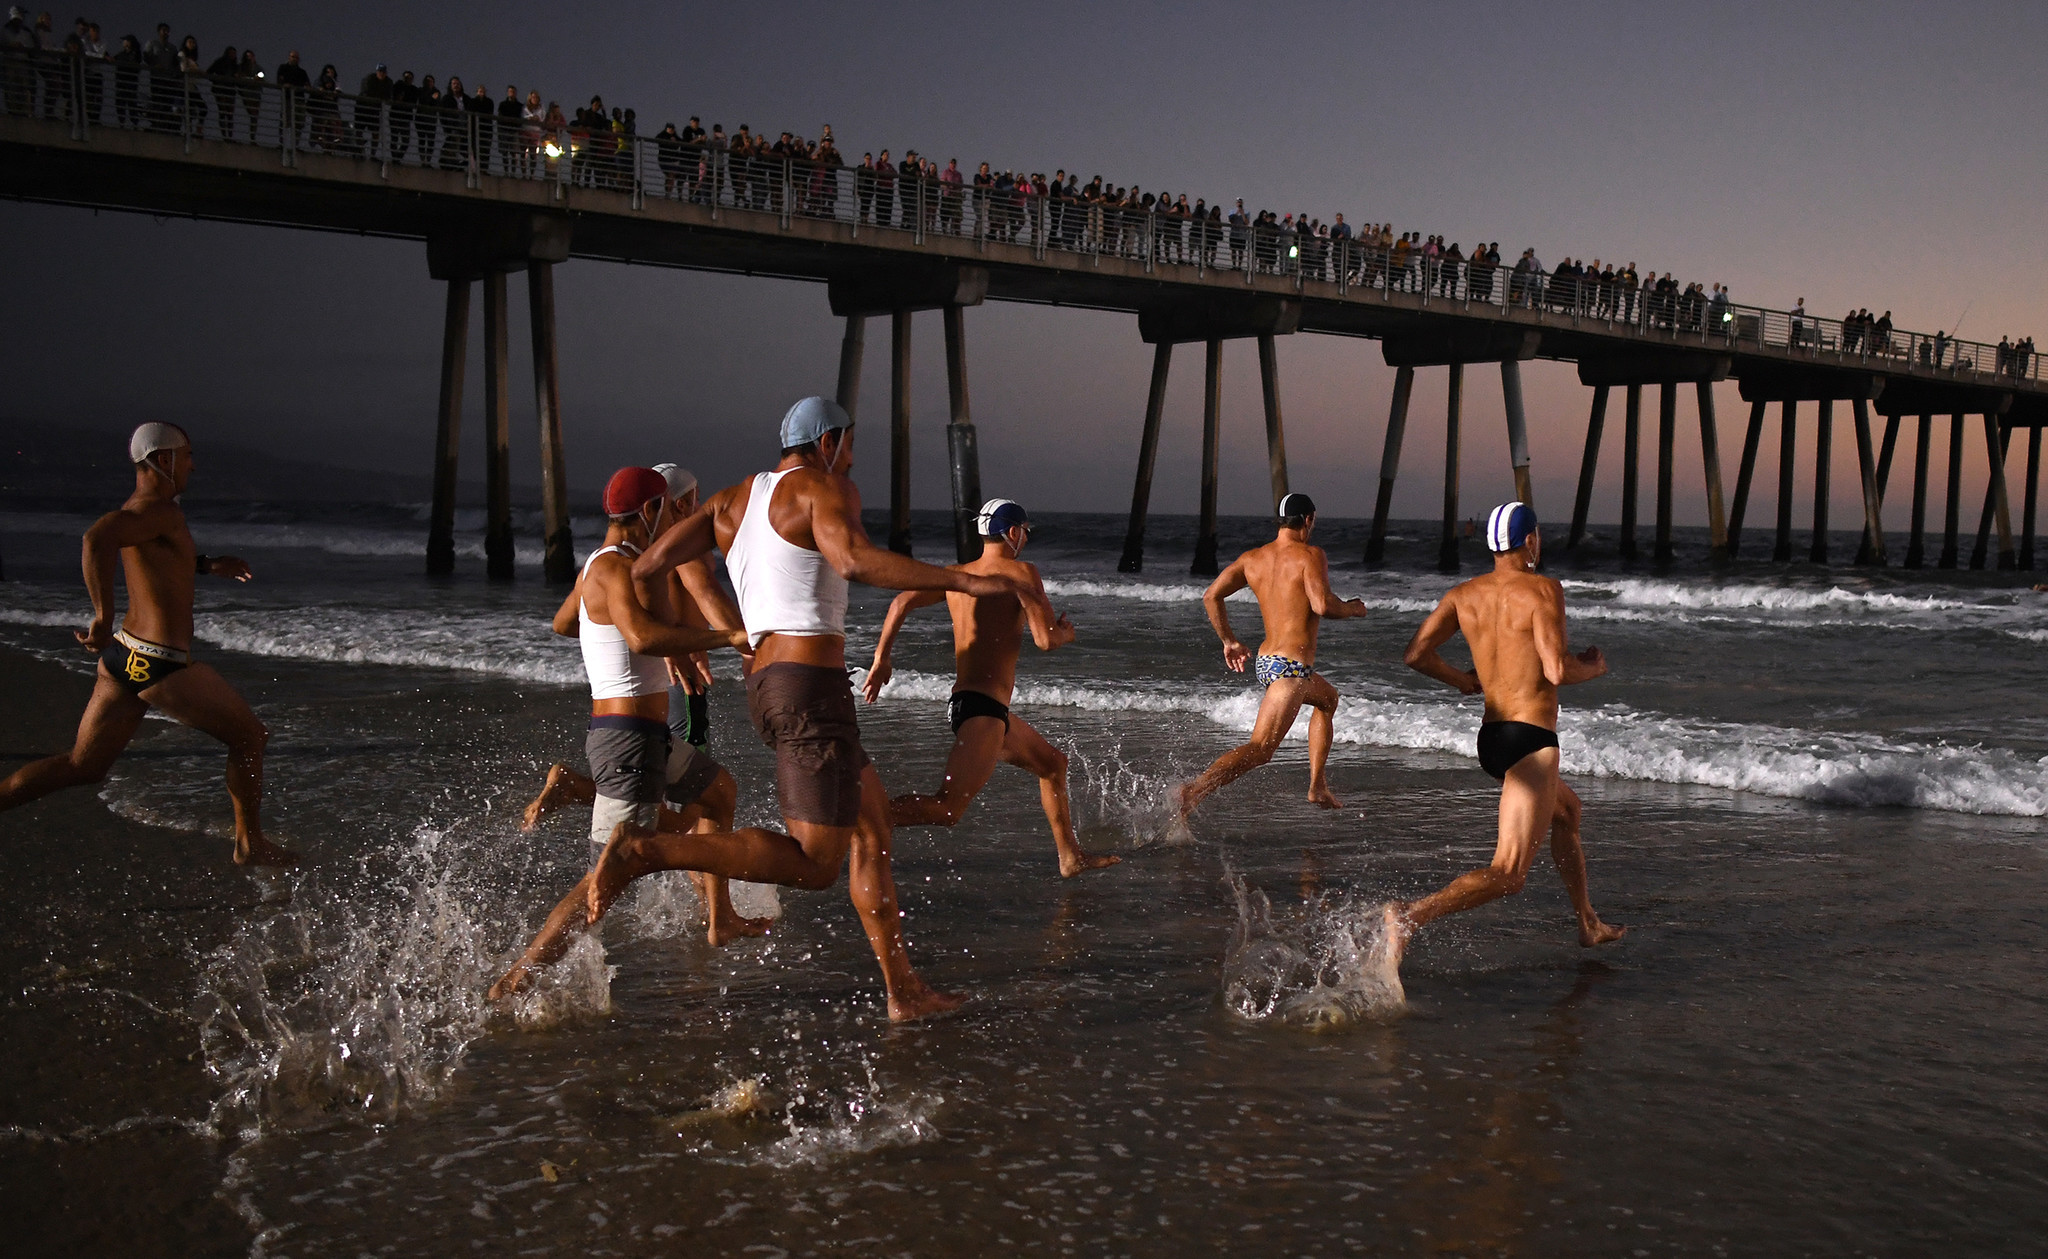 HERMOSA BEACH, CALIFORNIA AUGUST 3, 2018-Lifeguards from Southern California compete during the Inte